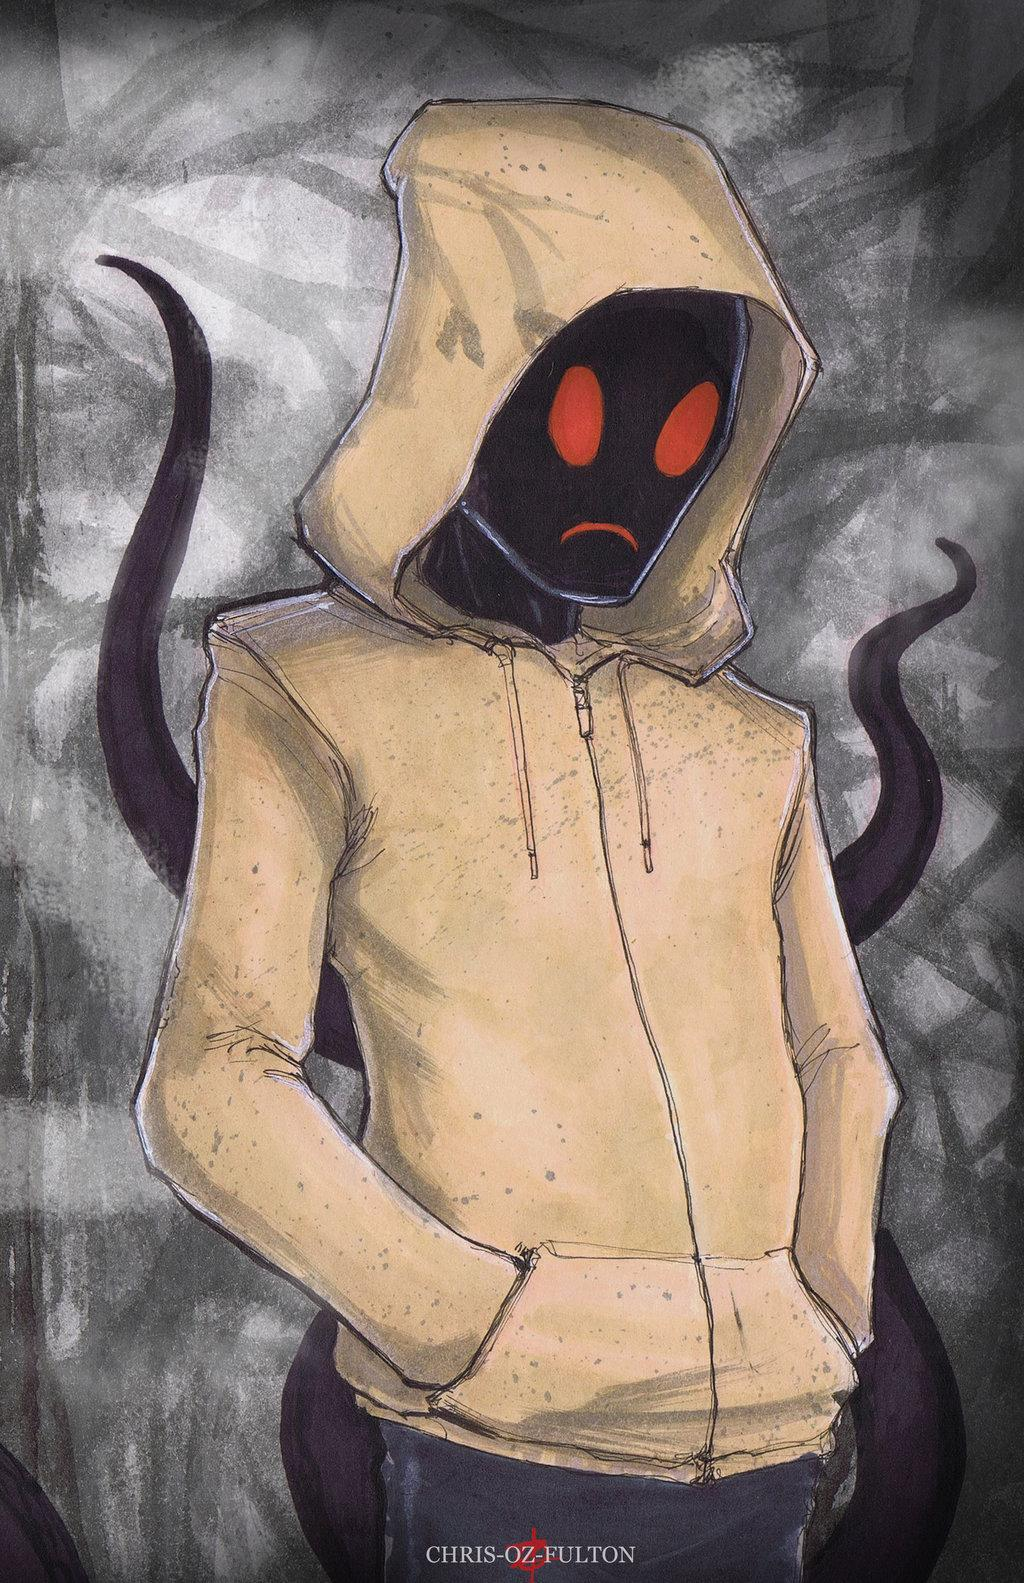 Who are my favorite characters in Creepypasta?